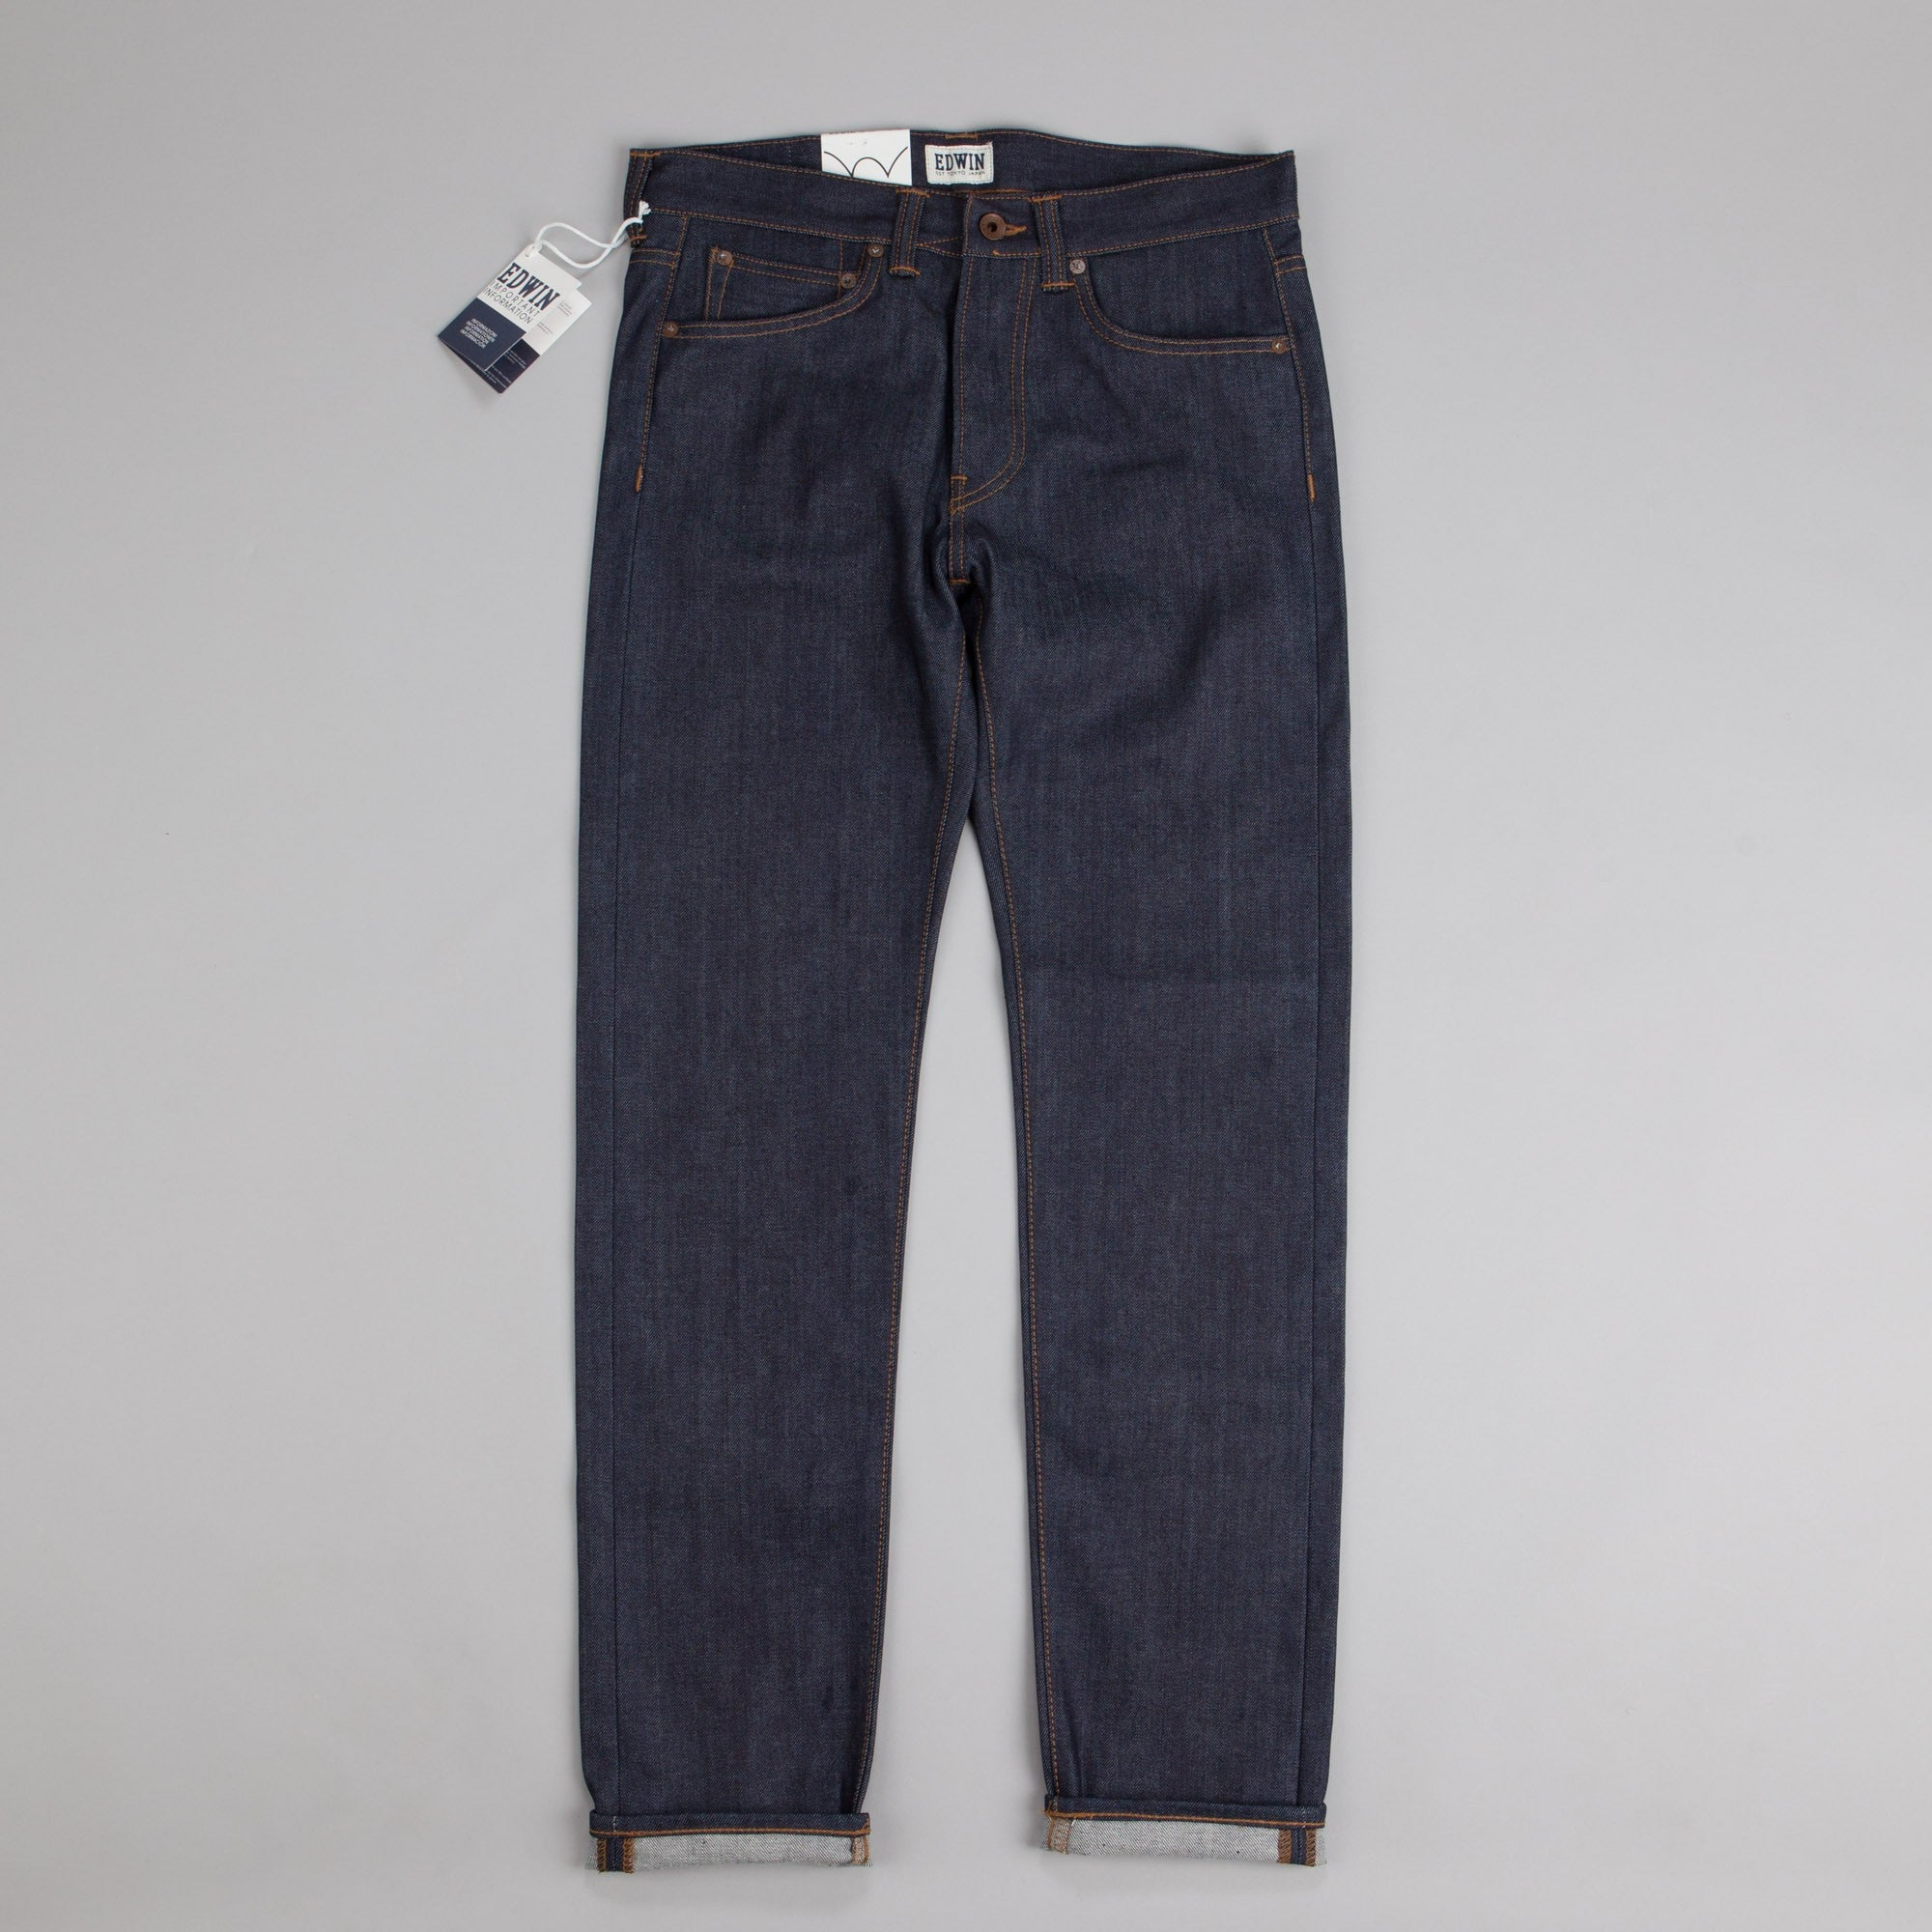 Edwin ED-80 Slim Tapered Compact Indigo Denim 11.5oz Jeans Blue Unwashed